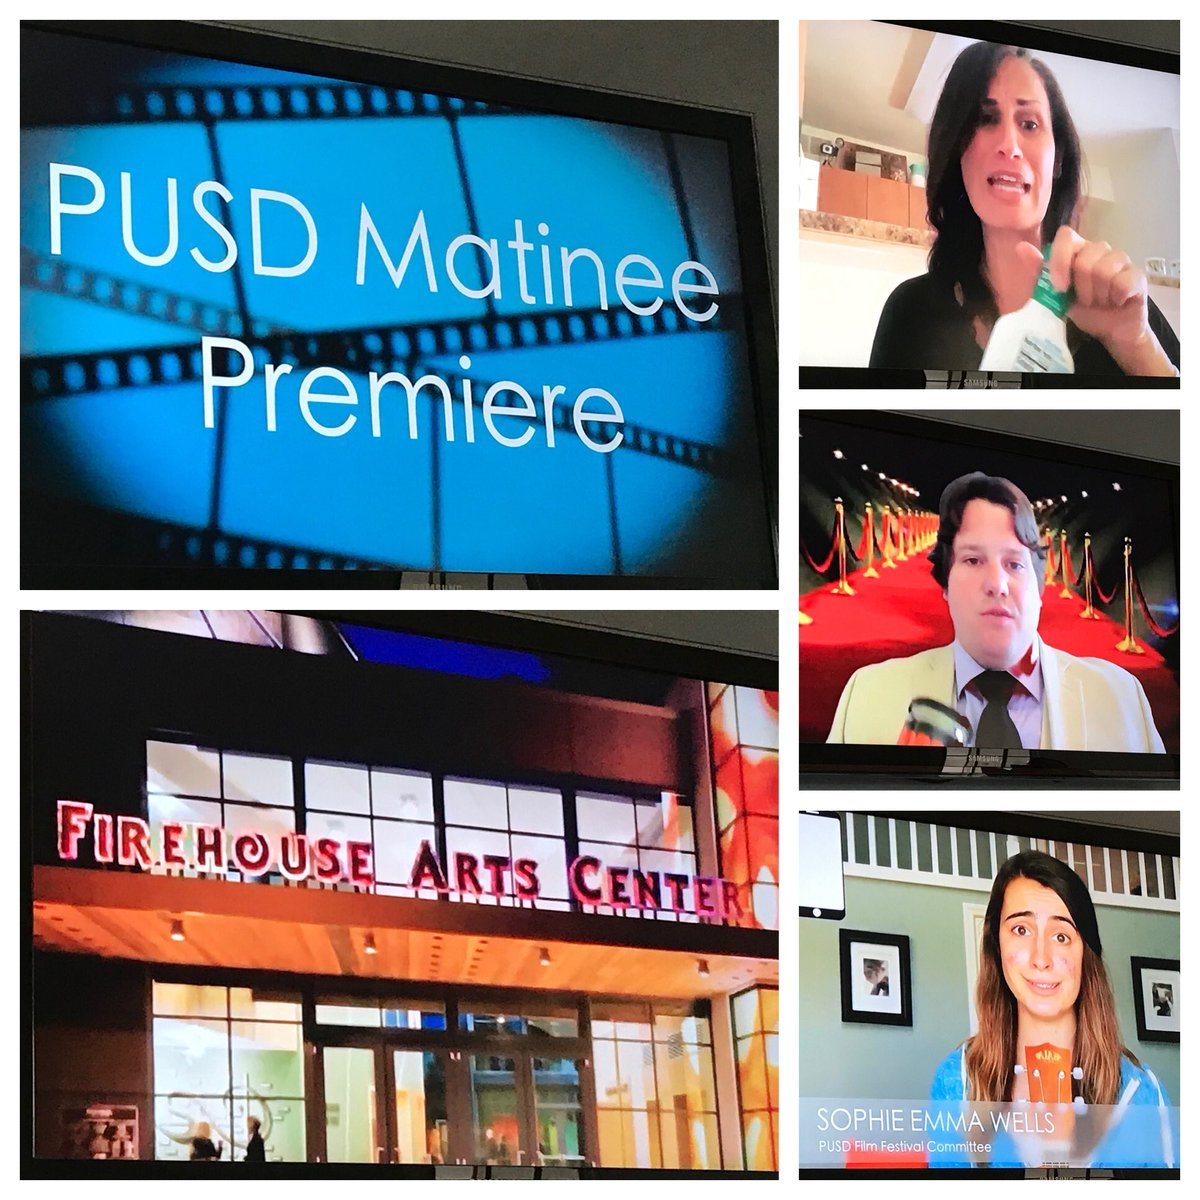 Student-created films and student-produced event! So proud of all the talent coming to fruition tonight! Keep watching at pusdfilmfestival.com